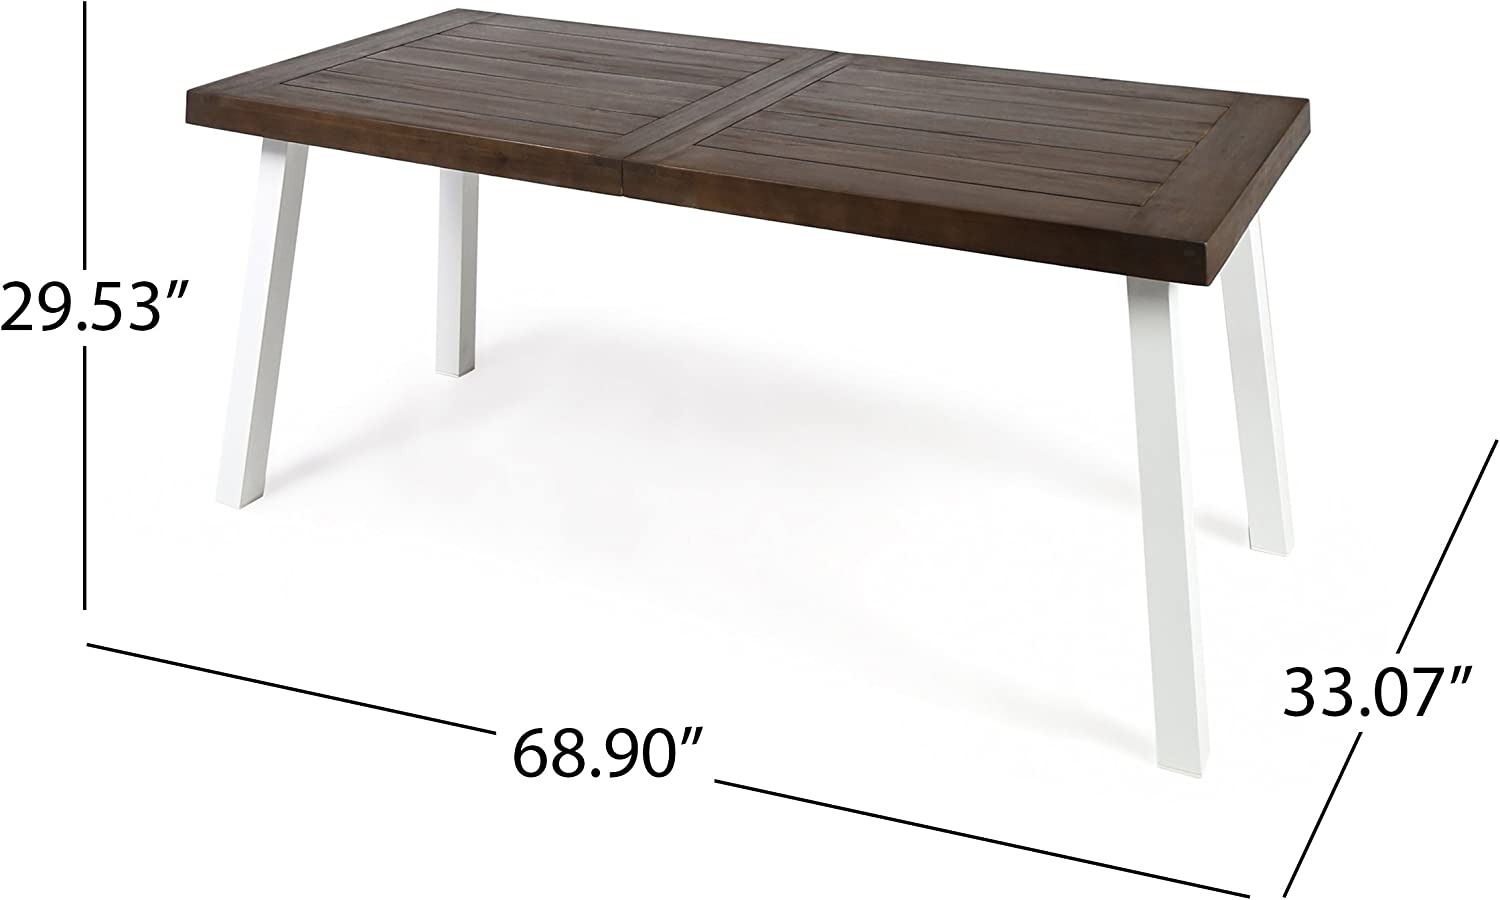 Christopher Knight Home Della Outdoor Acacia Wood Dining Table with Metal Legs, Dark Brown / White Rustic Metal : Garden & Outdoor